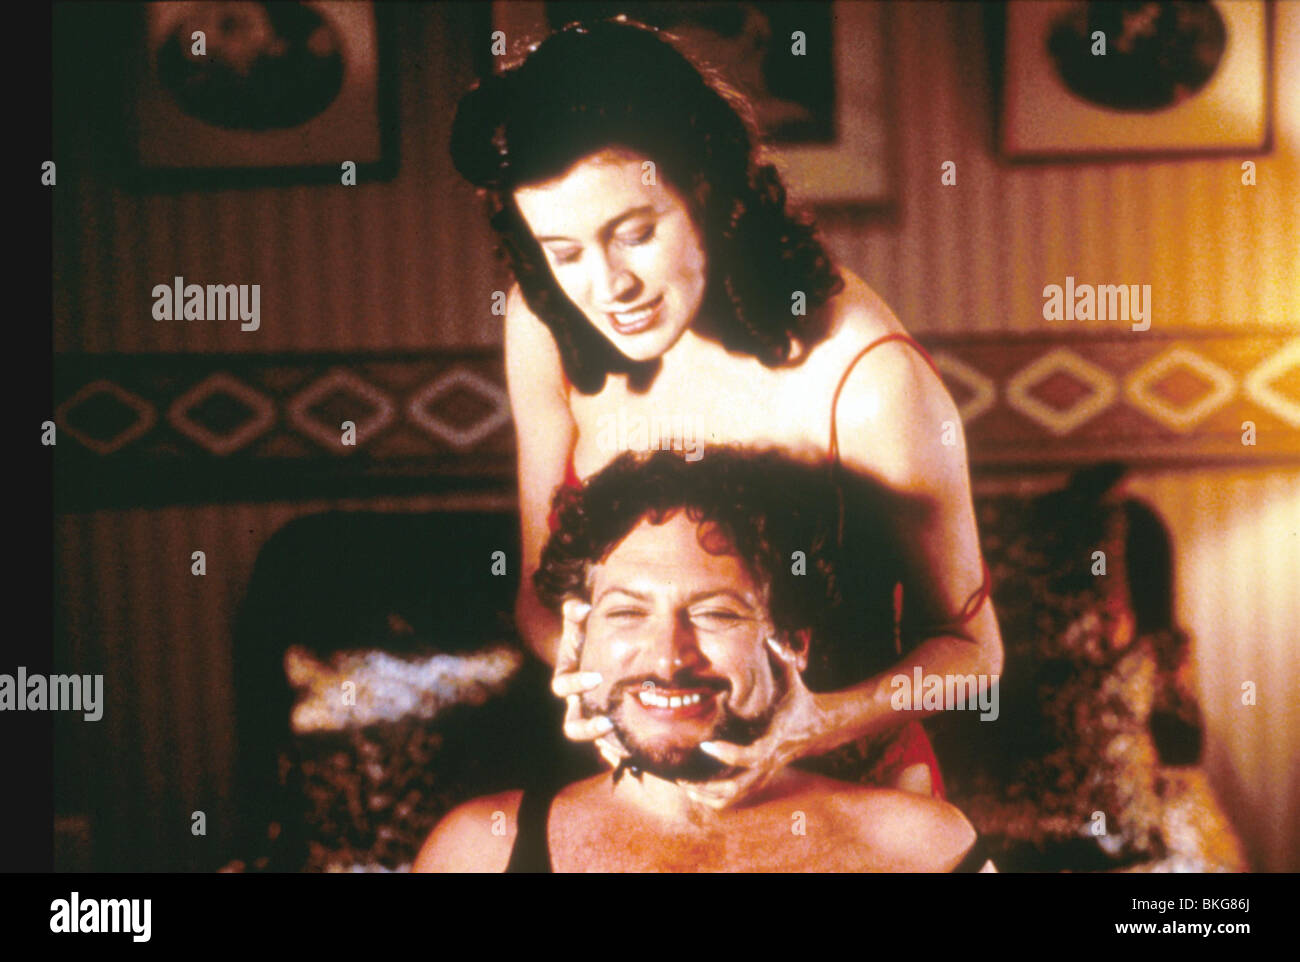 DR JEKYLL AND MS HYDE (1995) SEAN YOUNG, HARVEY FIERSTEIN ...